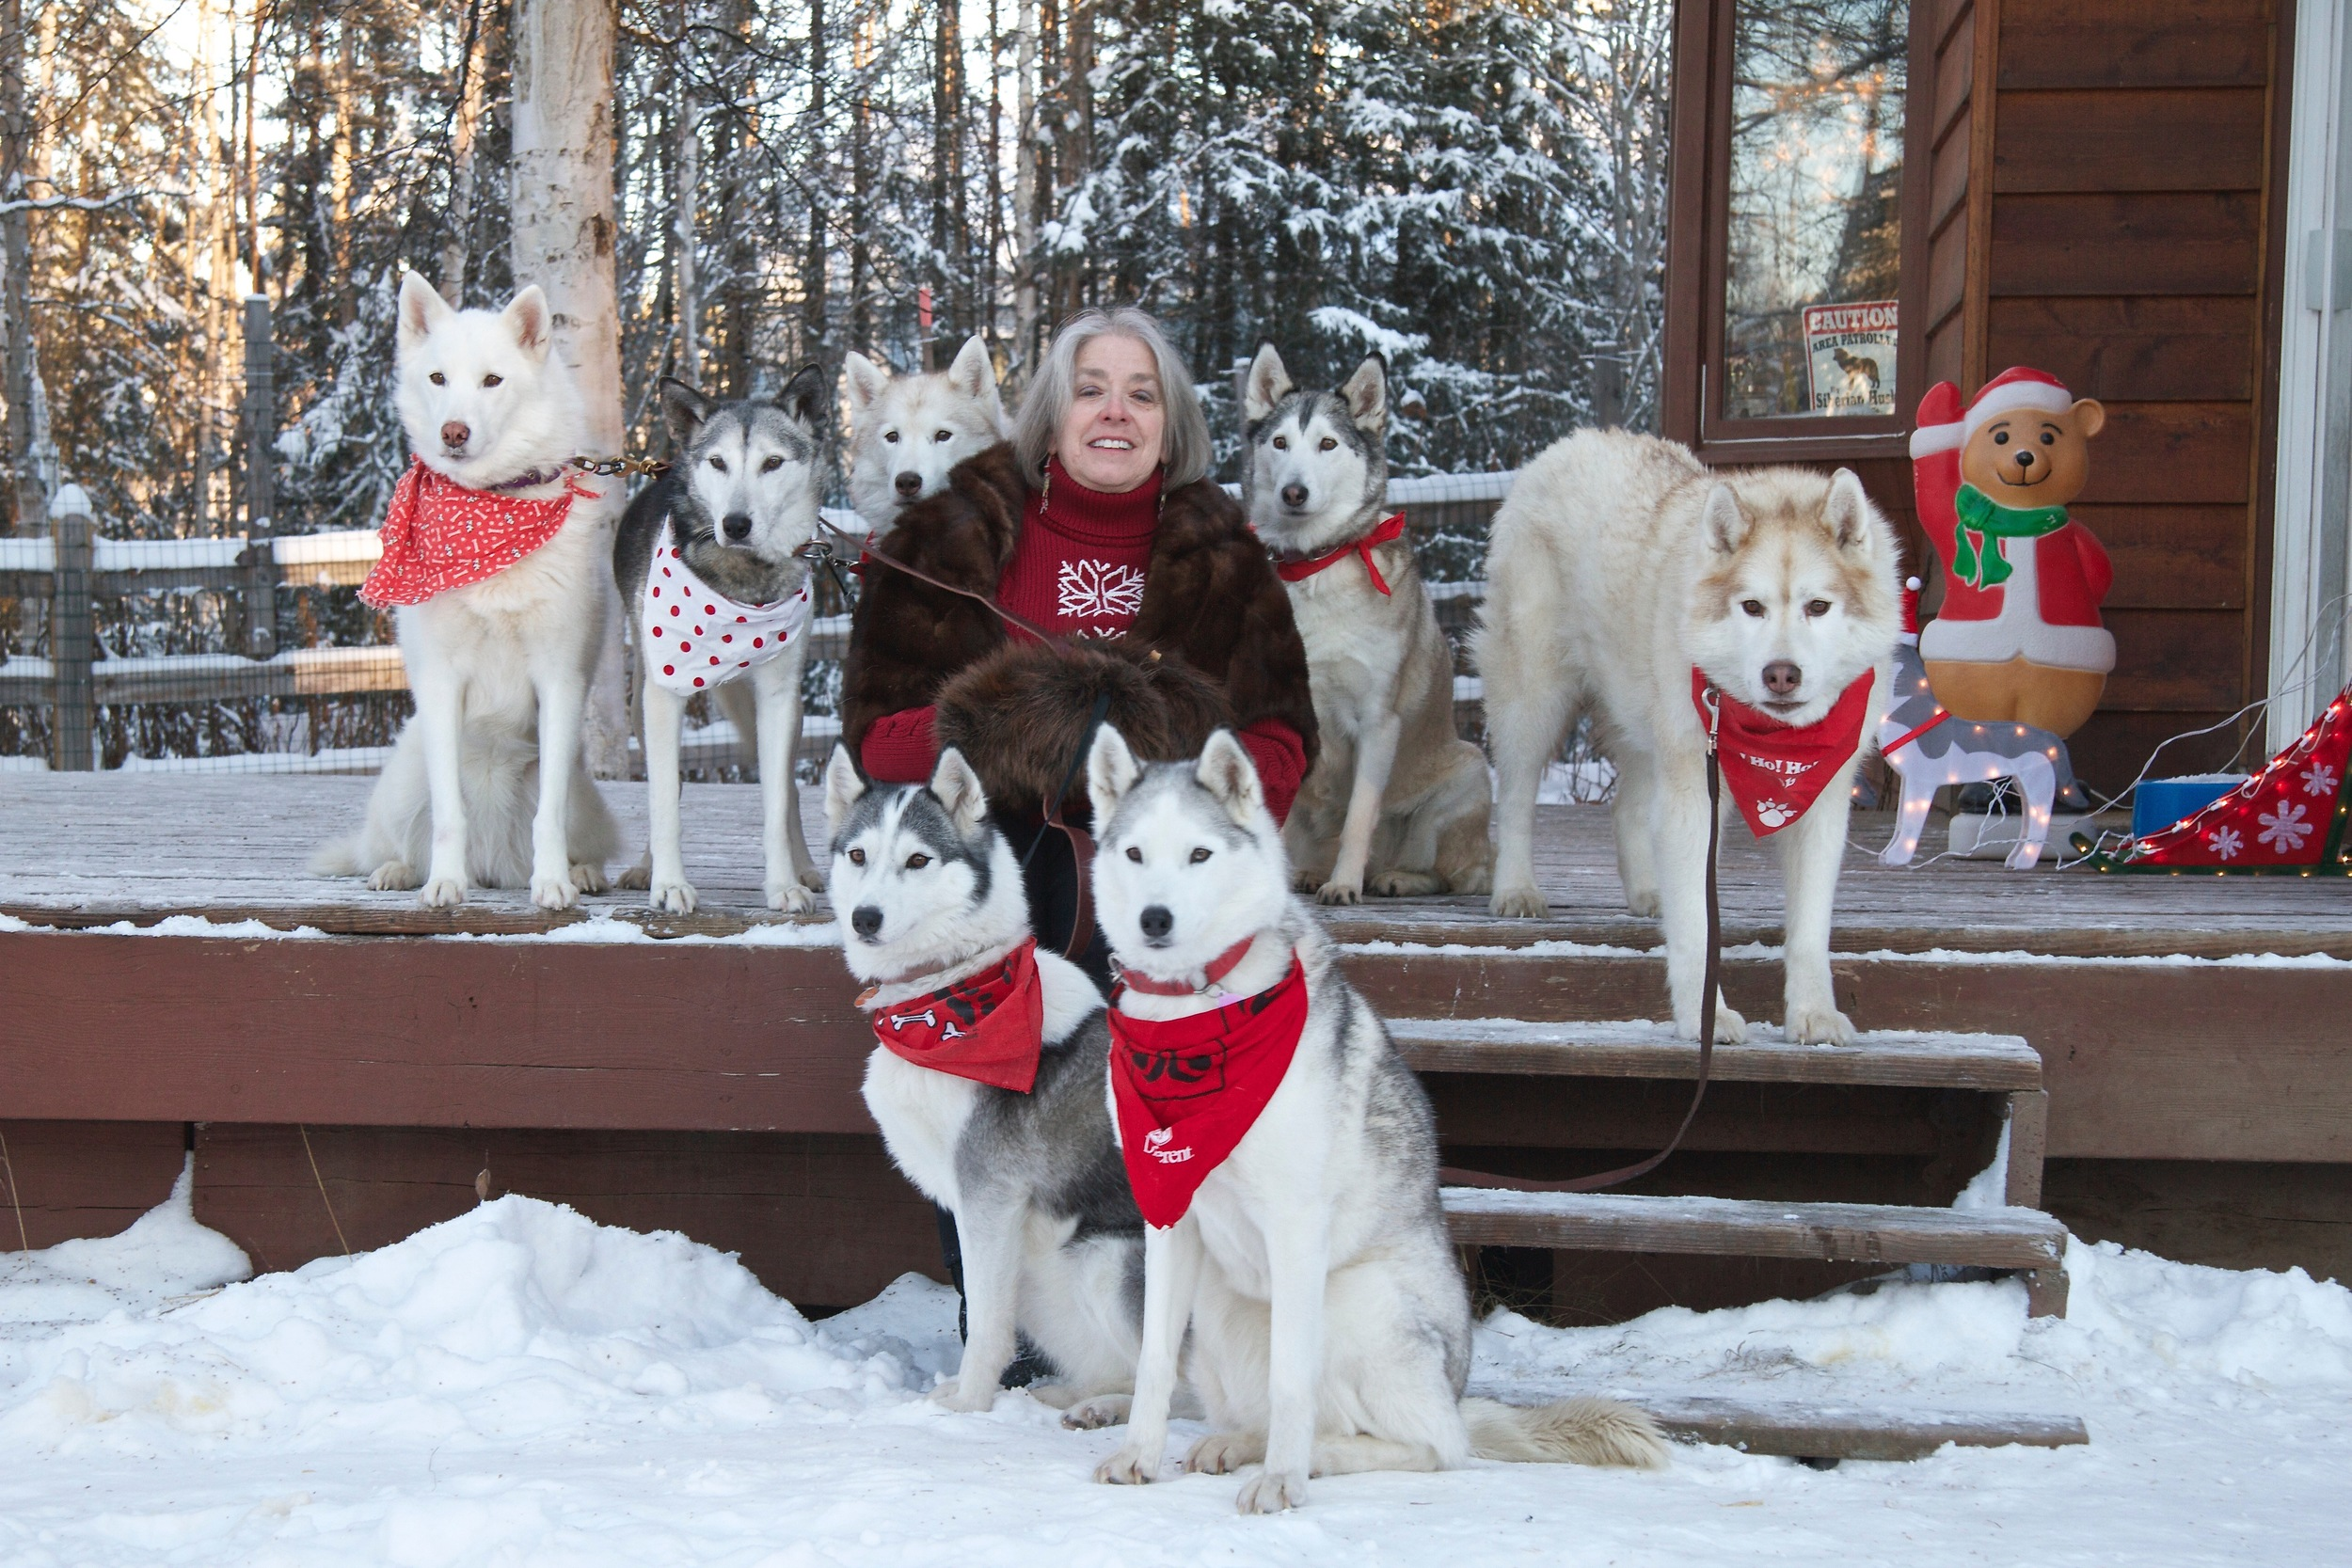 The magnificent seven and I pose for our Christmas card photo in Willow, Alaska.Top:Pearl, Maggie, Rosie, Chena and Spirit. Seated: Fritter and Nahanni. (photo credit: ©2017HuskyProductions/Teresa Firmin-Lindner)